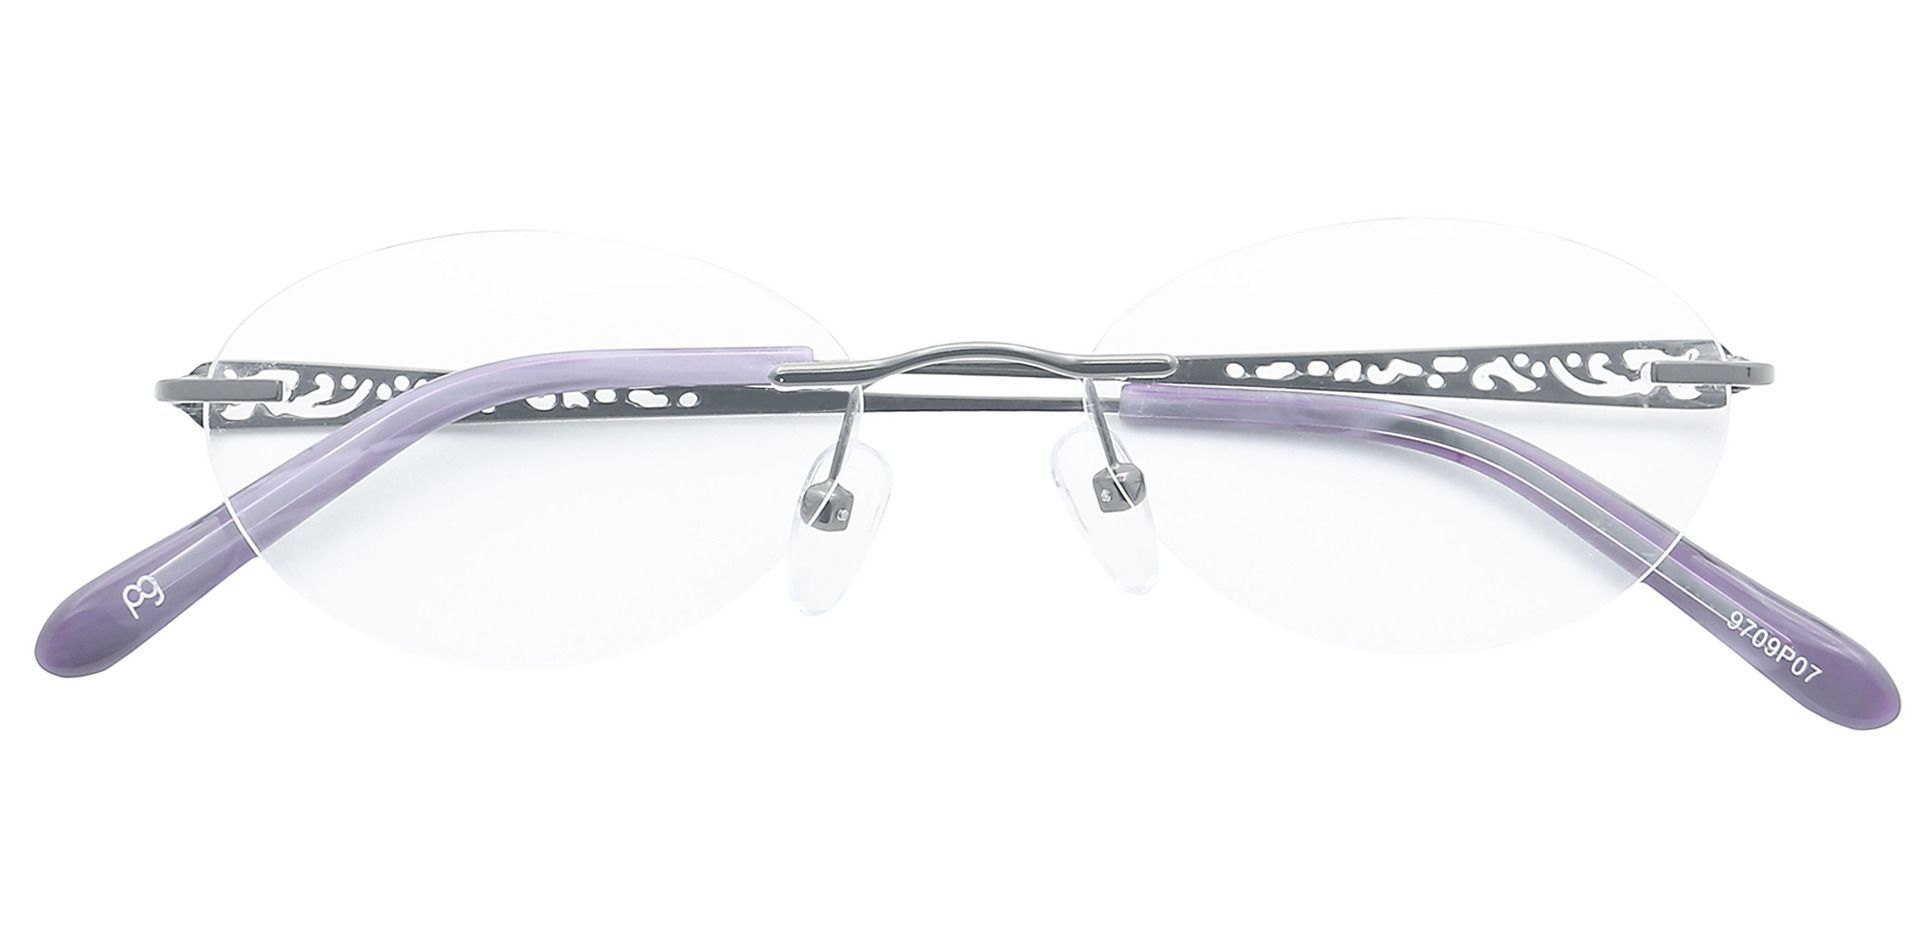 Christina Rimless Lined Bifocal Glasses - The Frame Is Black And Purple